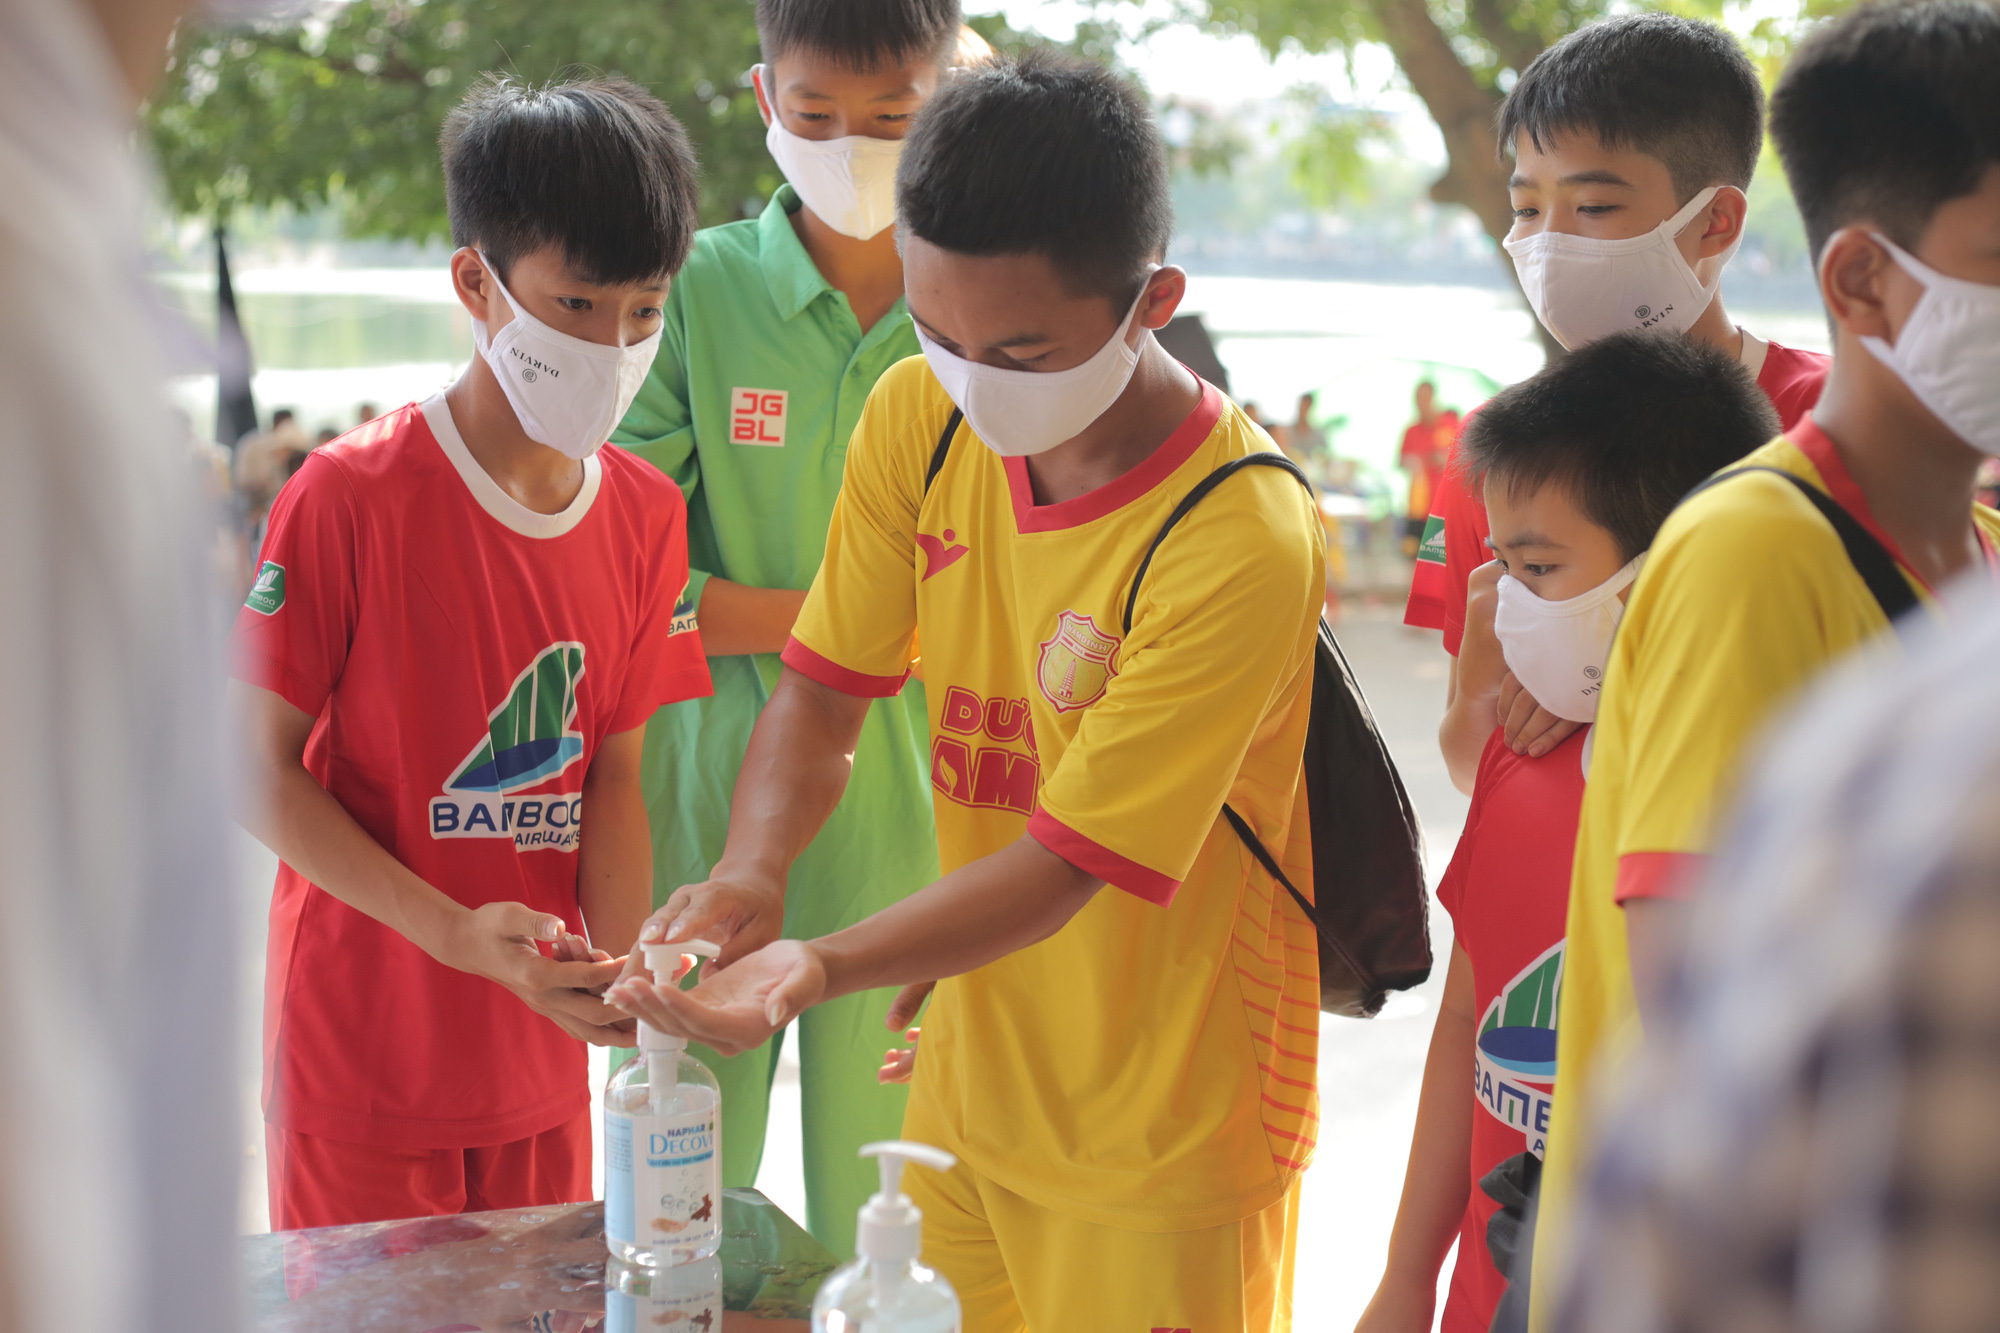 Spectators sanitize their hands before entering Thien Truong Stadium in Nam Dinh Province, May 23, 2020. Photo: Huu Tan / Tuoi Tre